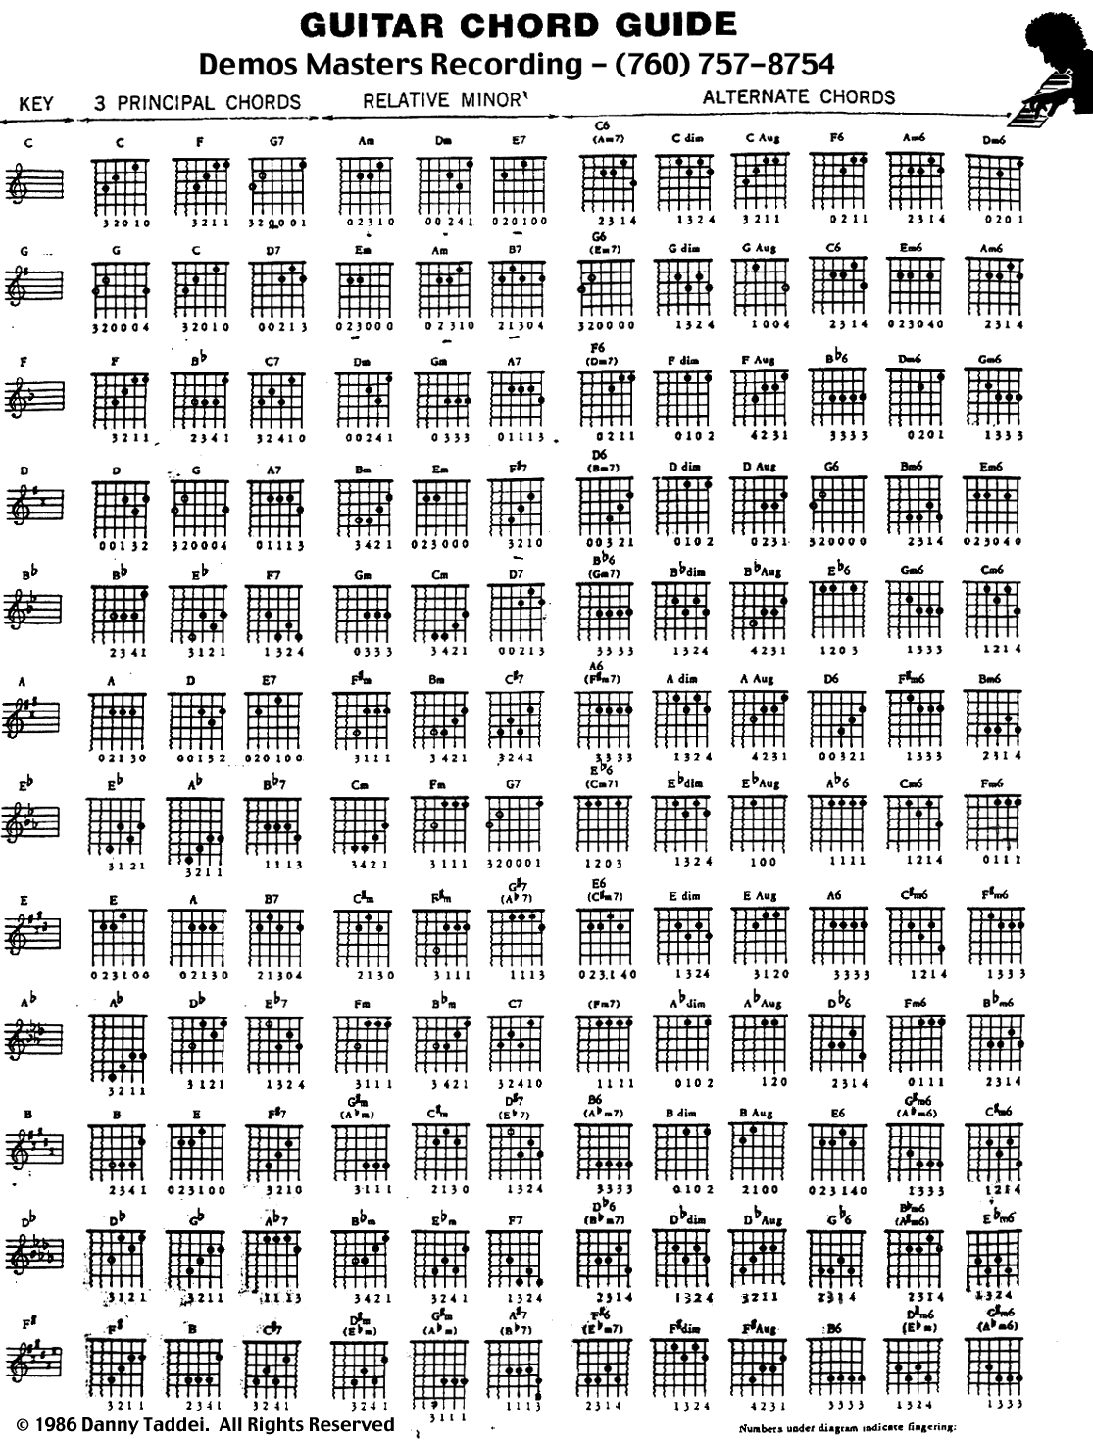 Useful Poster With Chord Charts Assorted By Key Ideal For Learning